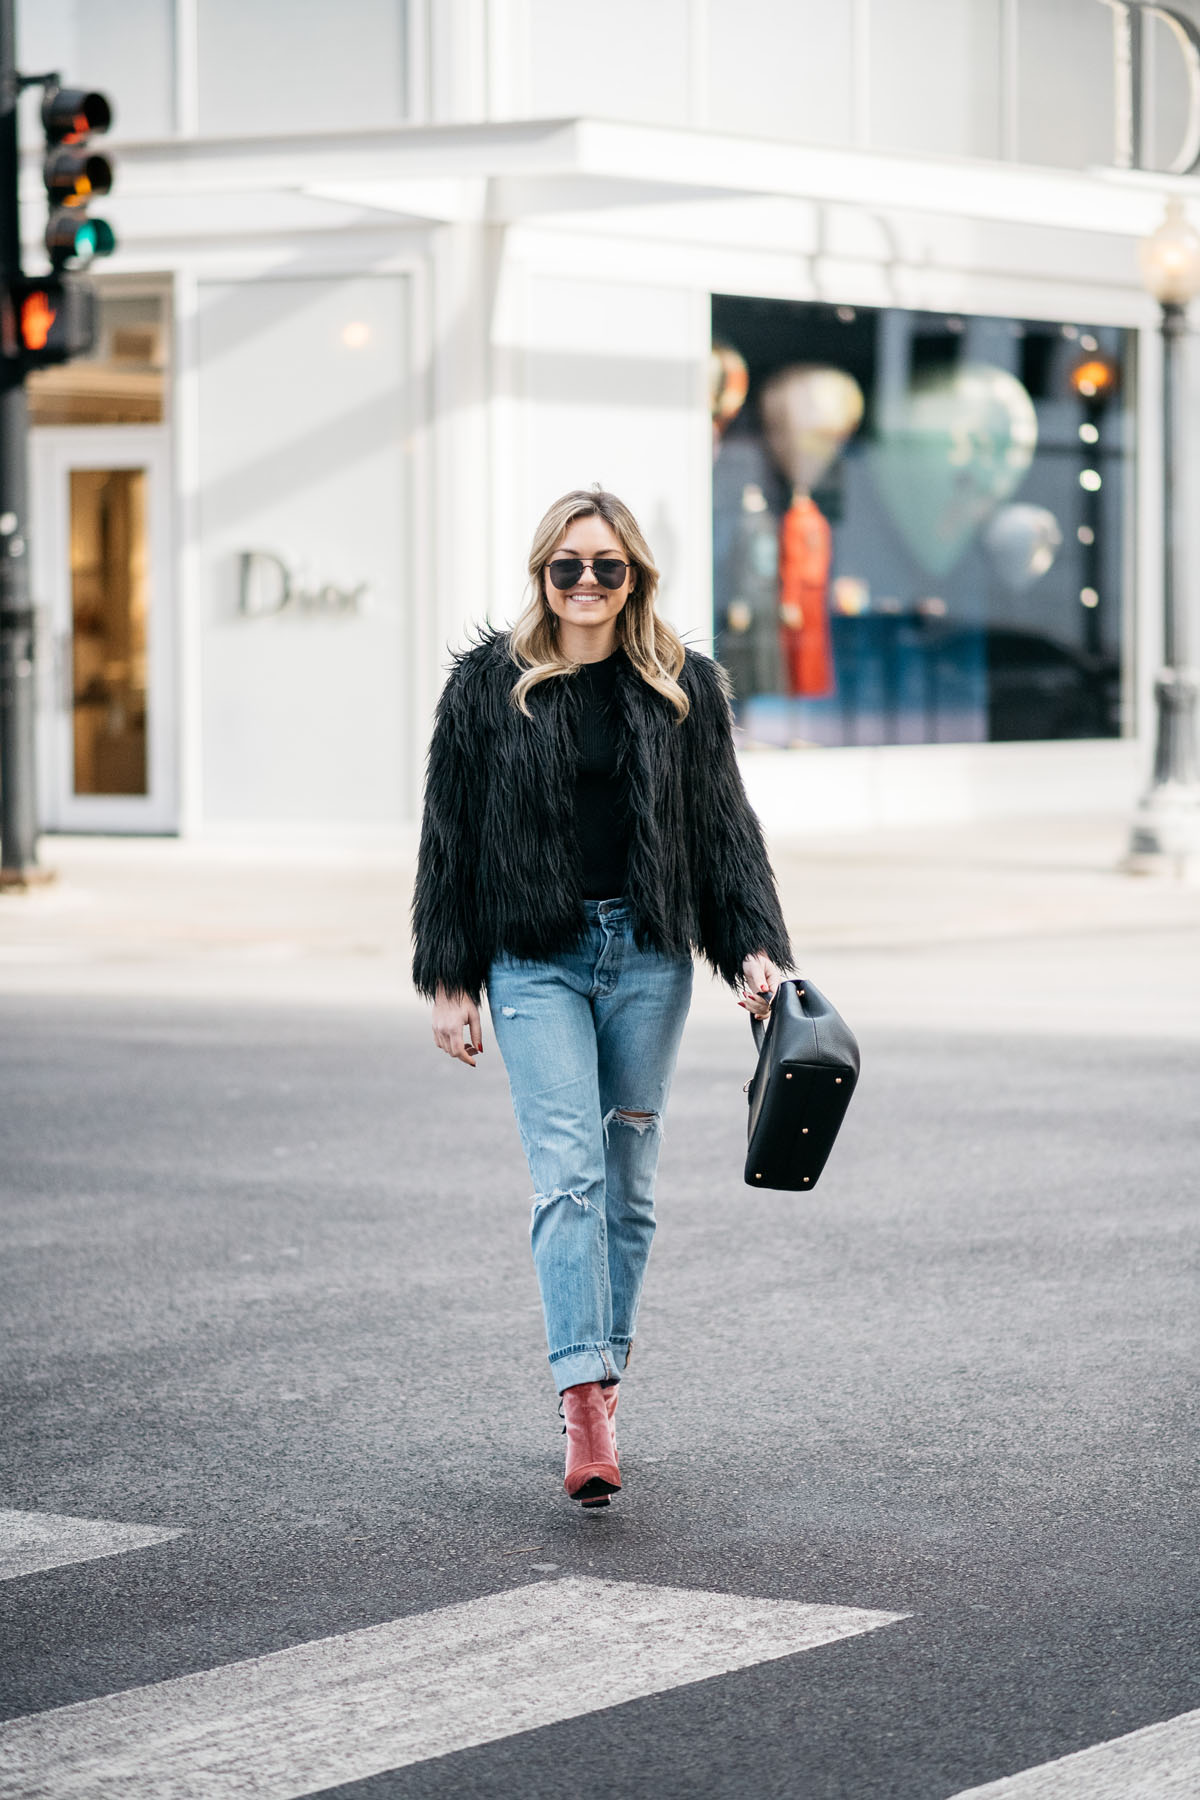 Chicago fashion blogger Jessica Sturdy sharing her winter uniform: black faux fur coat, Old Navy ribbed sweater, Levi's 501 boyfriend jeans, Robert Clergerie pink velvet booties, Polene Paris top handle bag, and Le Specs matte black aviators.